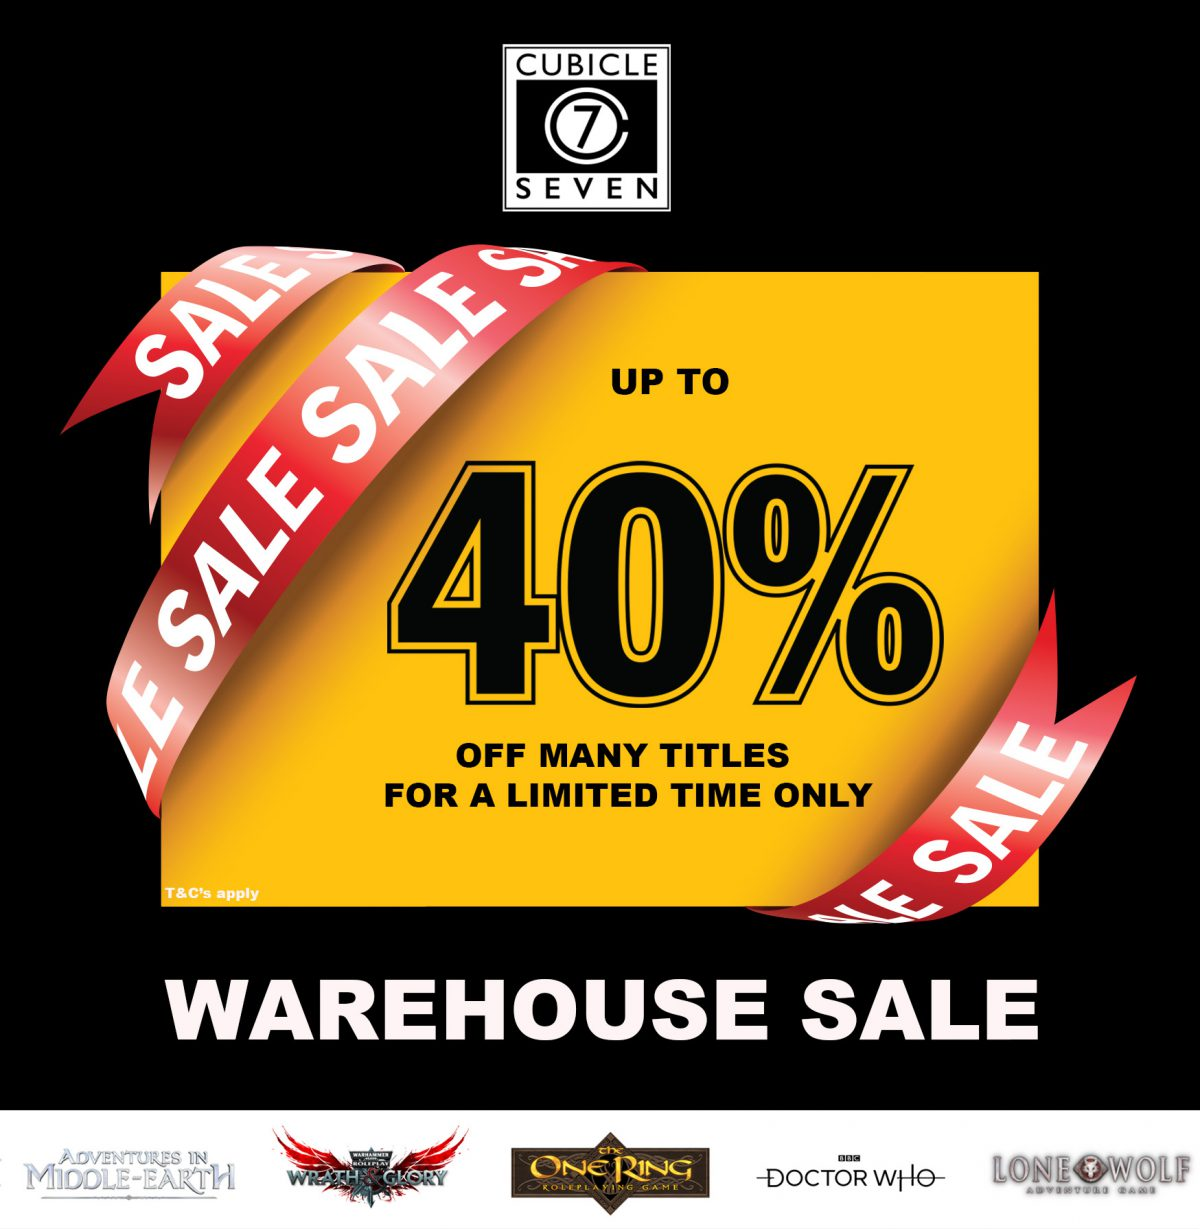 C7 Warehouse Sale: Up to 40% off!